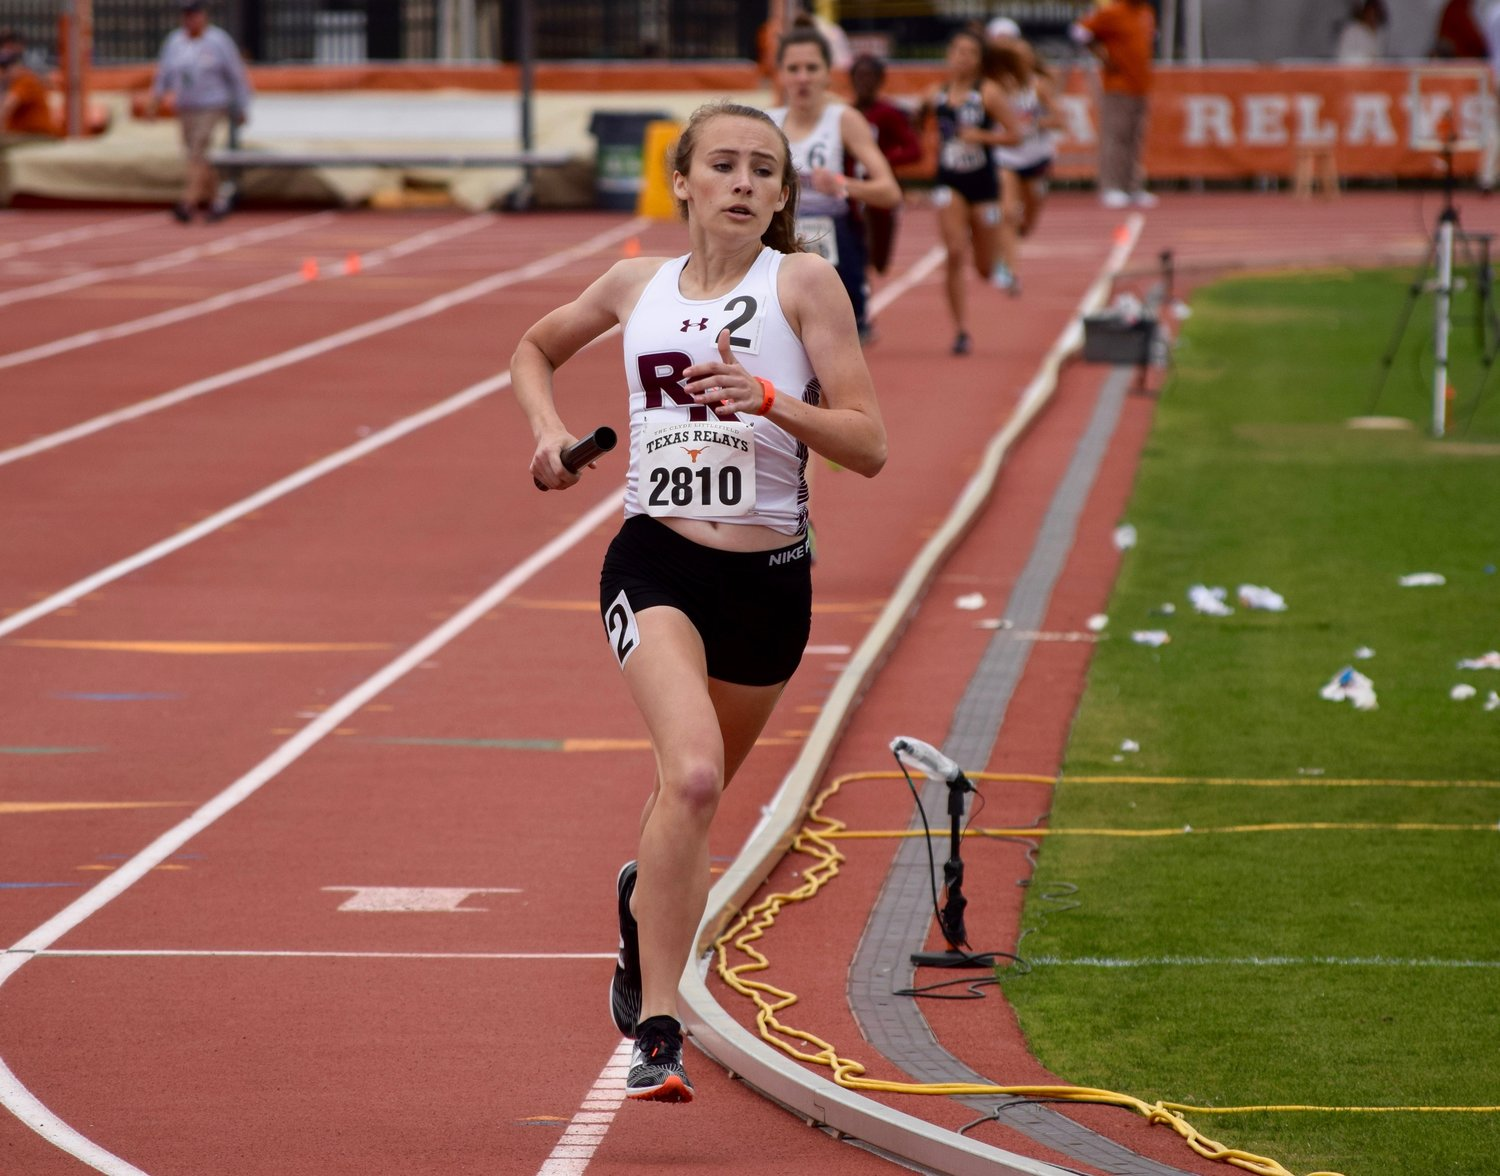 Megan Nevlud and the Round Rock girls' 4x800-meter relay team of Lauren Willson, Riley Beard and Amirah Creighton set a new school record with a time of 9:36.89, winning the event at the Texas Relays on Saturday.